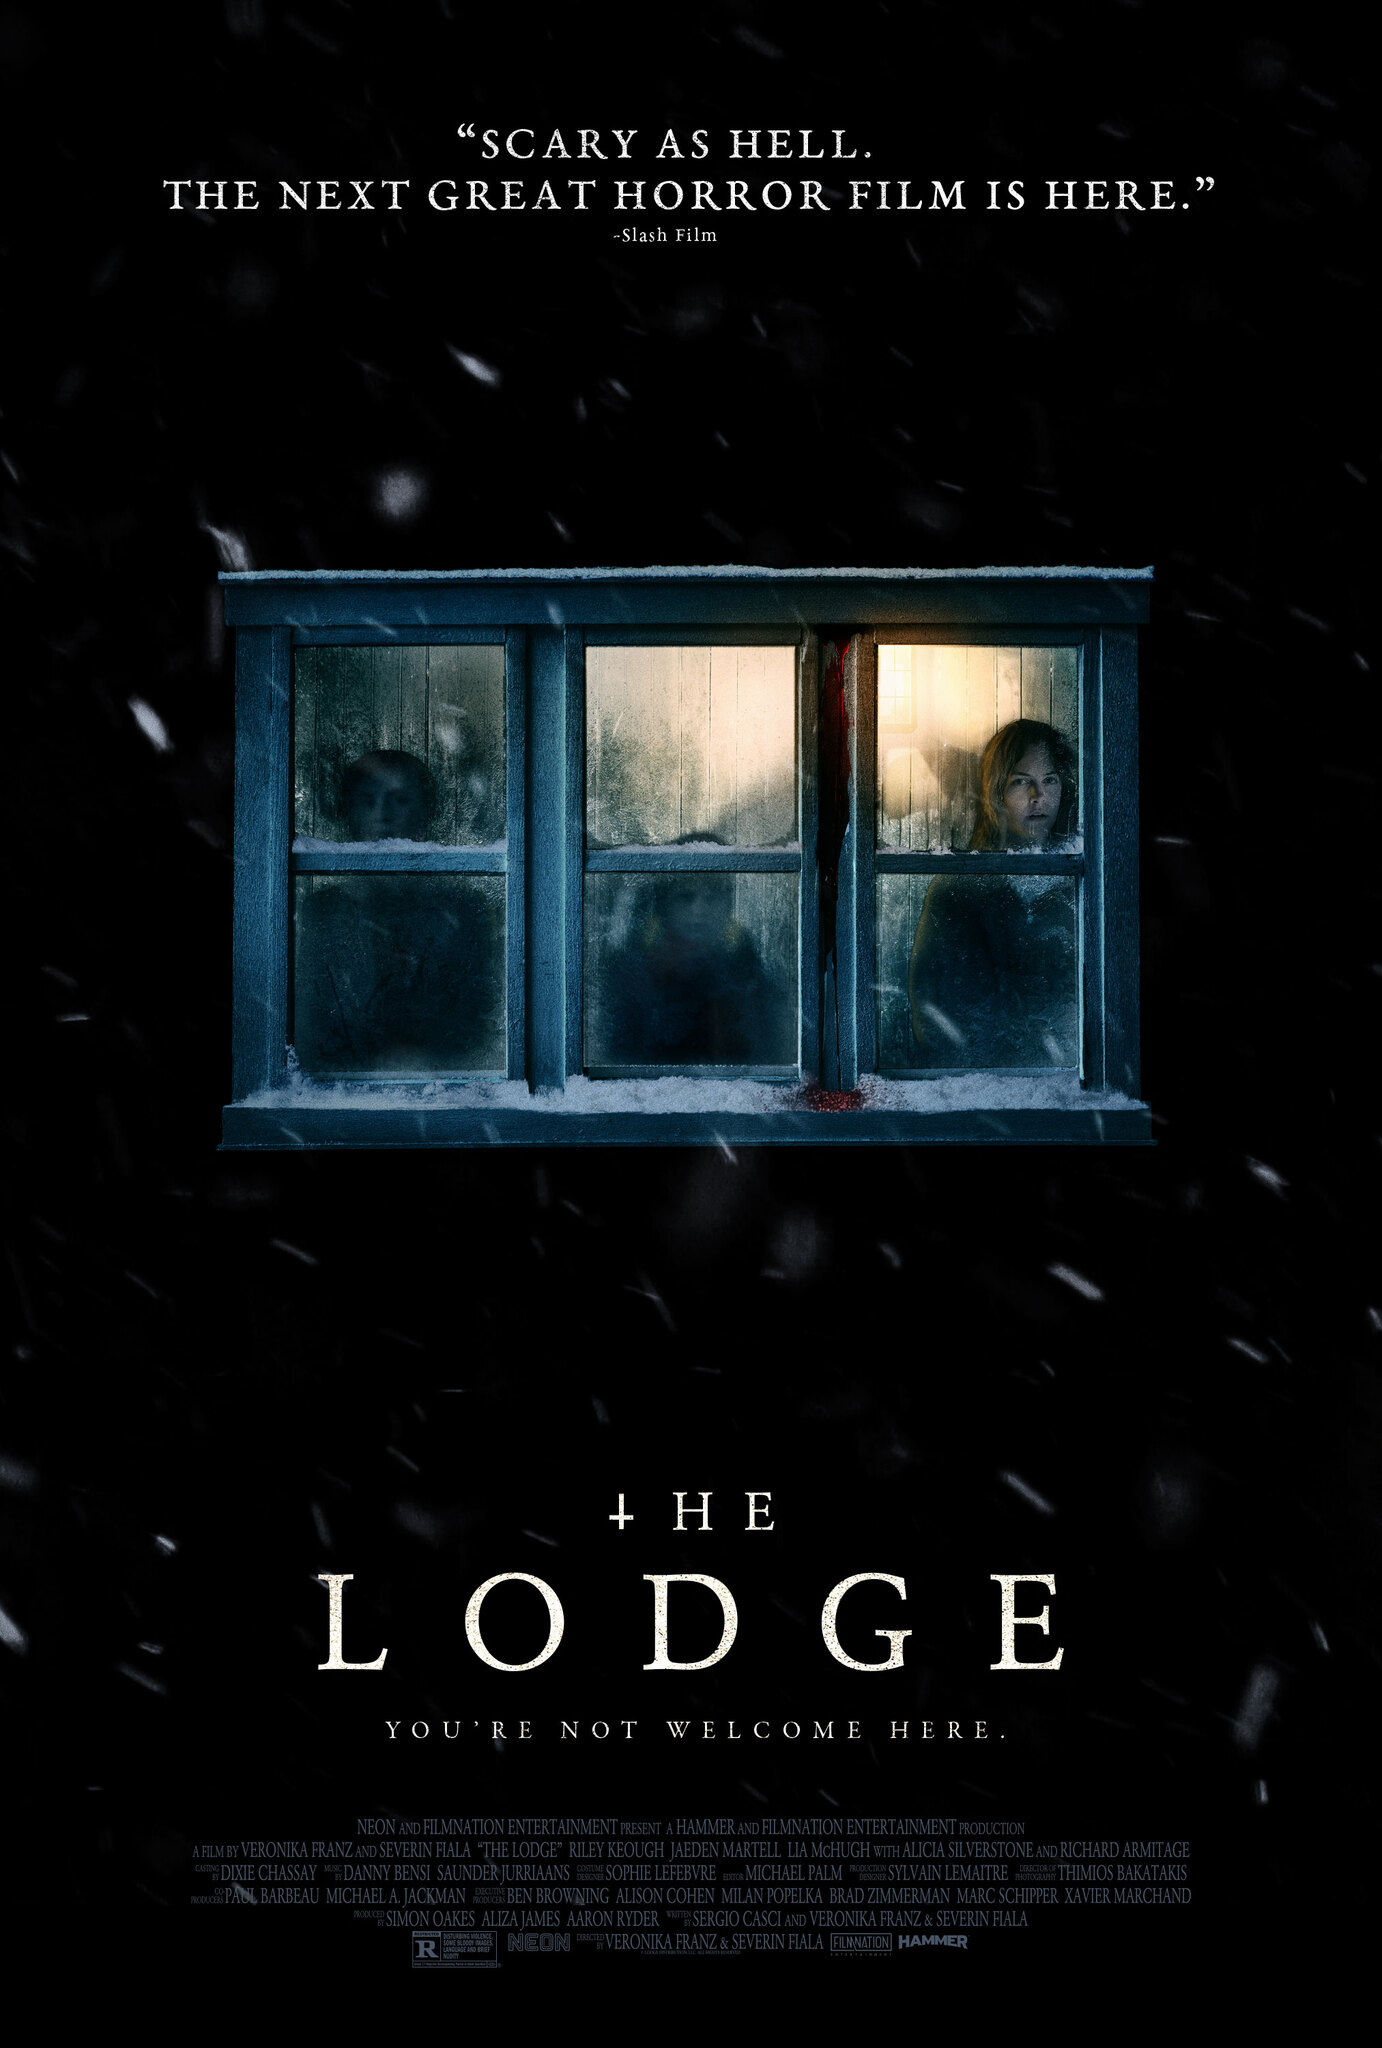 Movie poster image for 'THE LODGE'